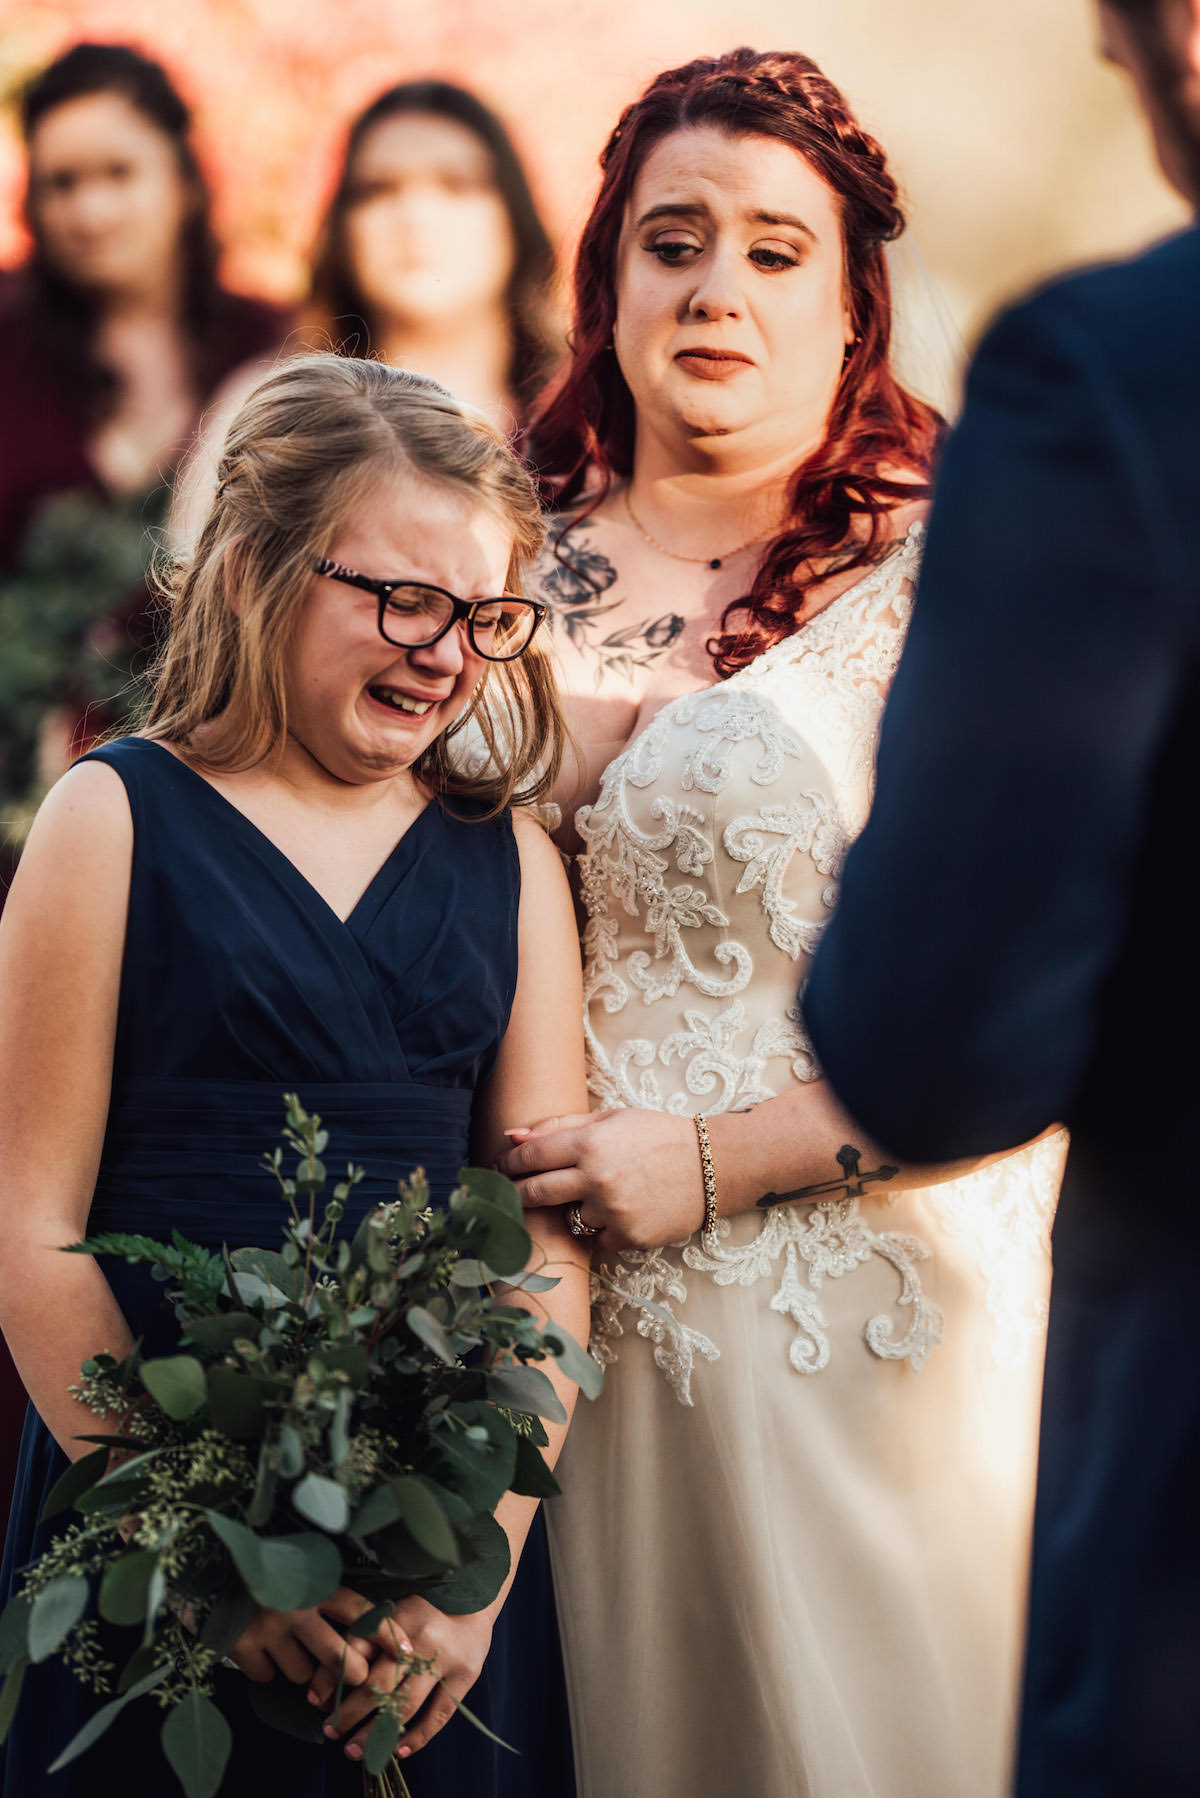 A Groom Wrote Vows for His New Stepdaughter at His Wedding & the Beautiful Moment Is Captured in Moving Photos